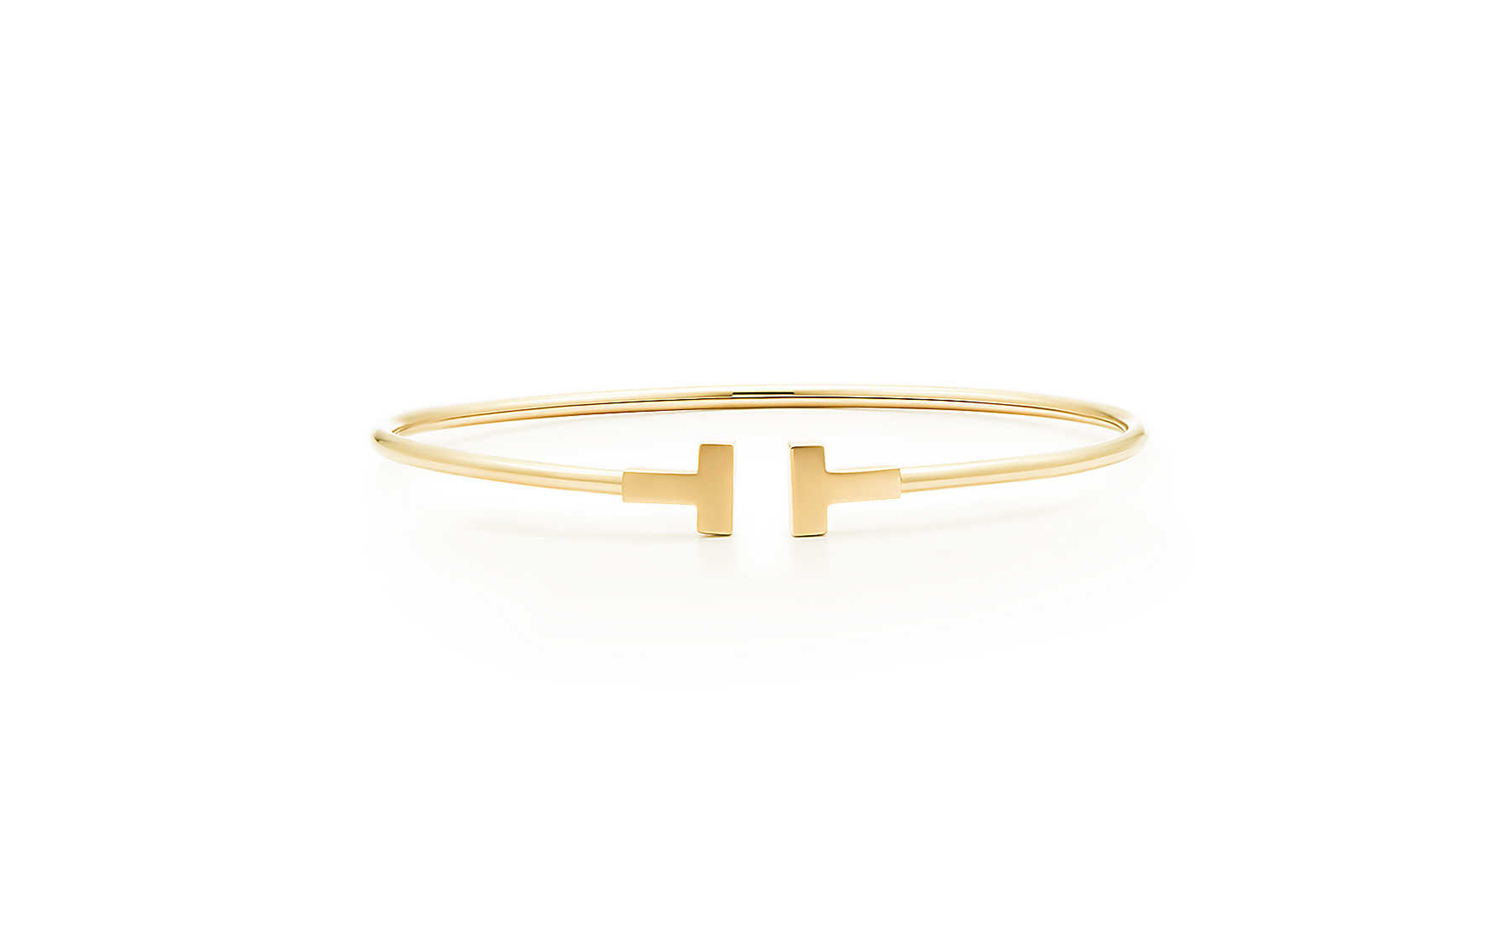 Tiffany T Narrow Wire Bracelet in 18K Gold